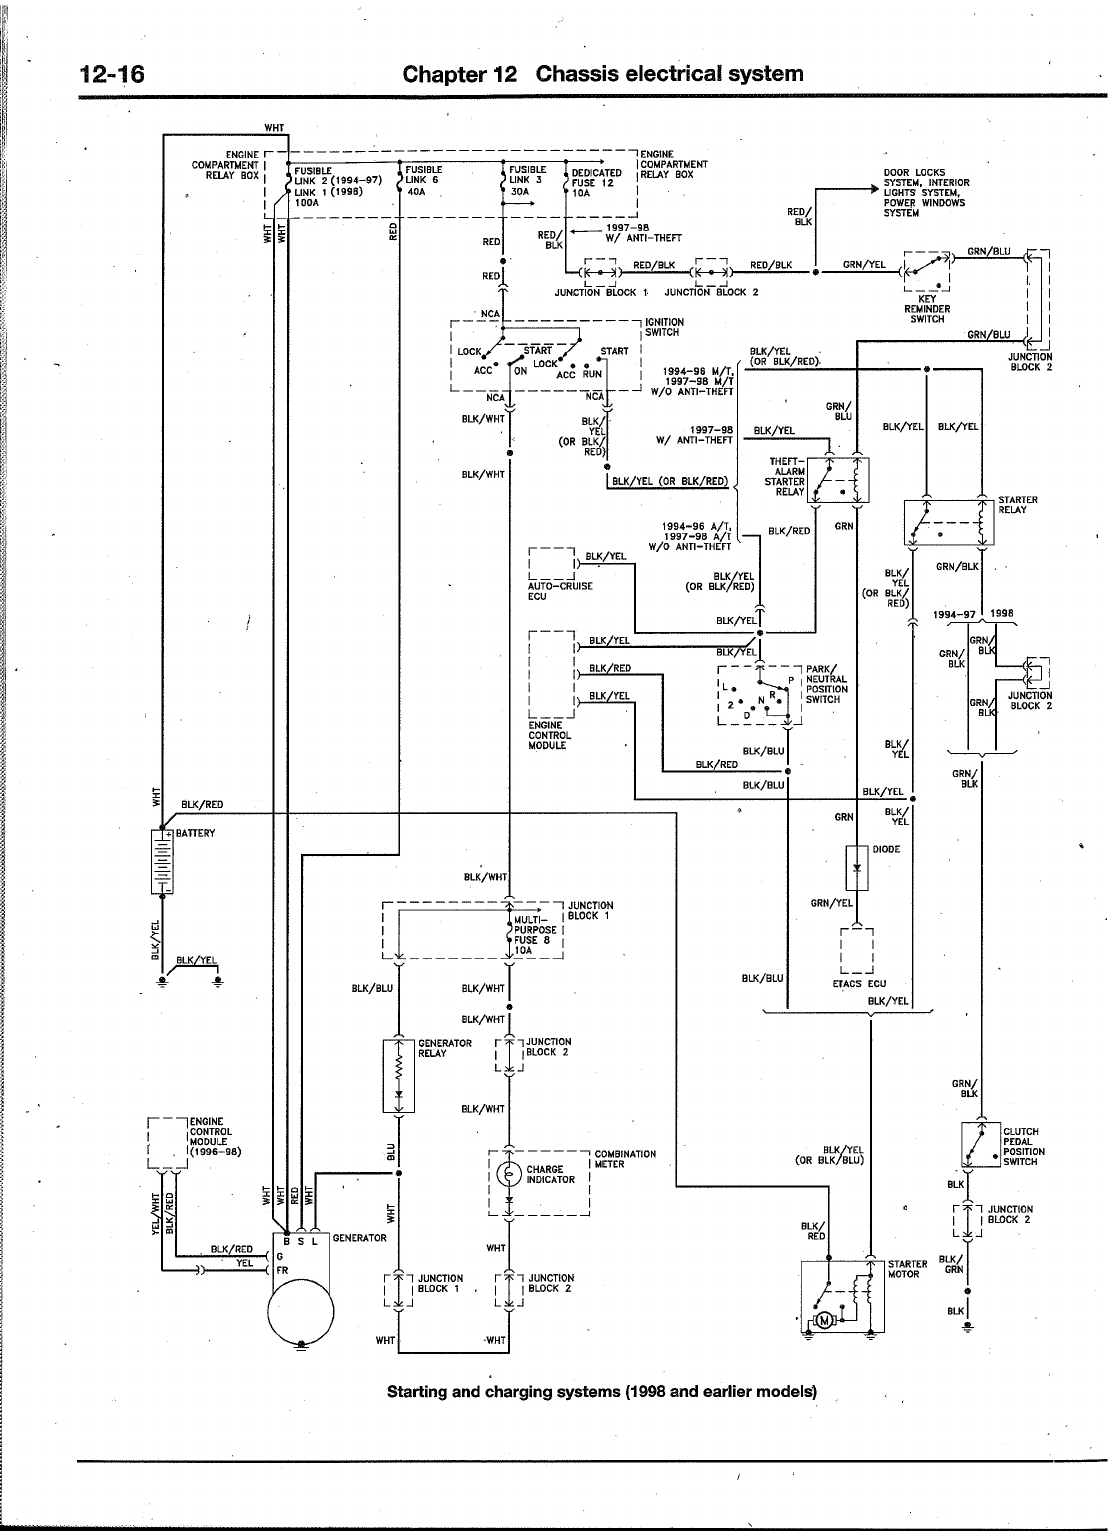 bg1 mitsubishi galant 1994 2003 misc document wiring diagram pdf 2001 mitsubishi galant wiring diagram at gsmx.co